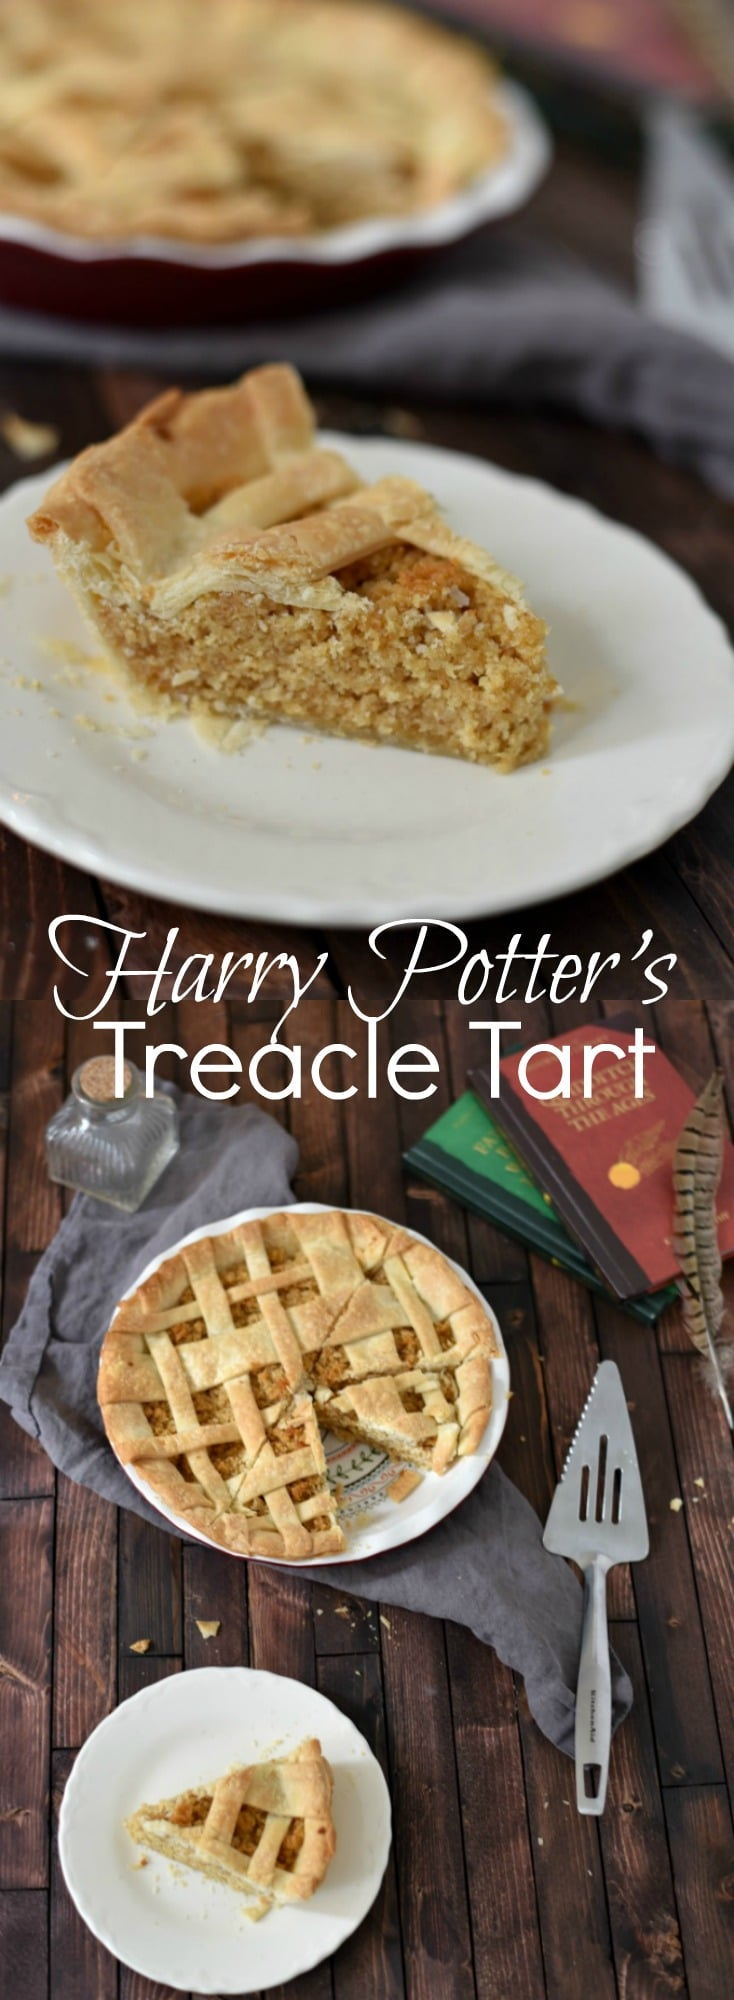 This easy Treacle Tart is a lovely dessert, and perfect for the Harry Potter fan! Just three ingredients needed for the filling!  Harry Potter Recipe, Easy Dessert, Lattice Pie